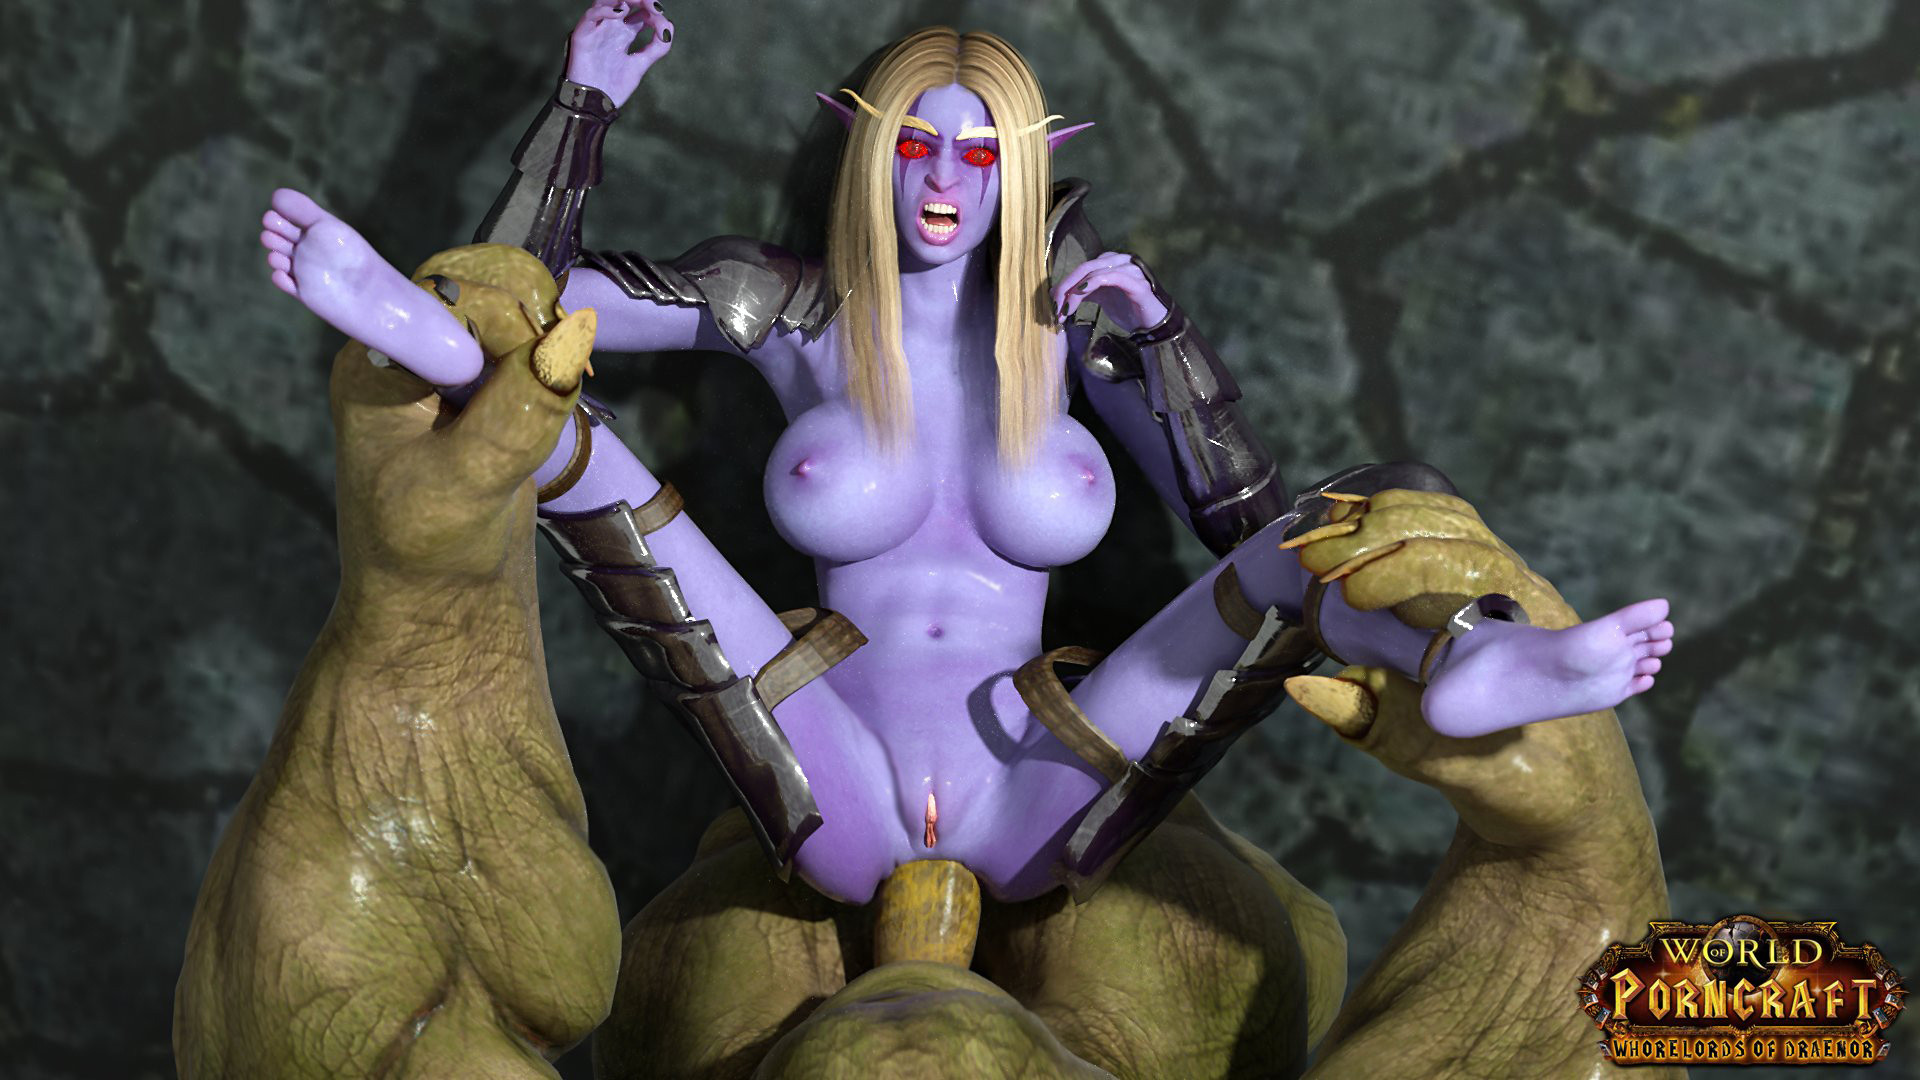 Sylvanas 3d porn game adult gallery